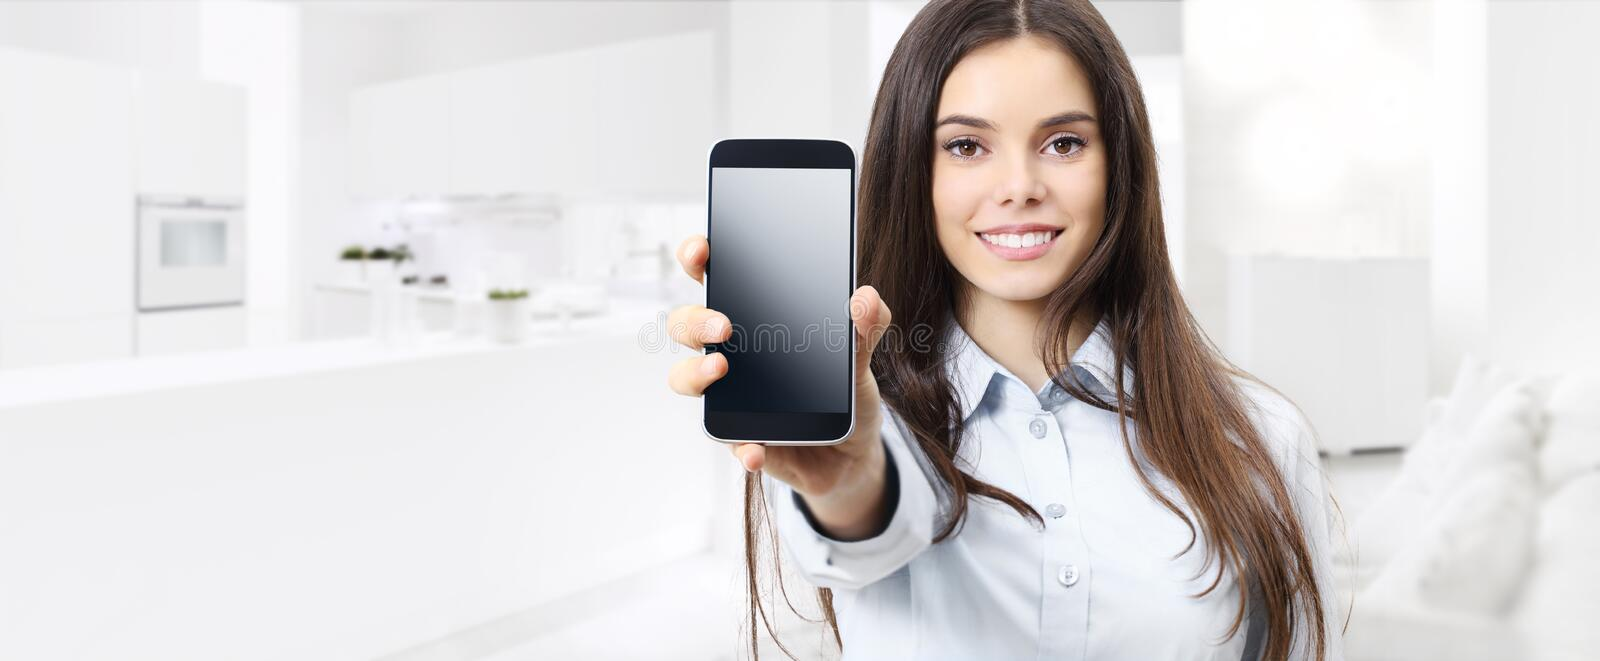 Smart home control concept smiling woman showing cell phone screen on kitchen and living blurred background royalty free stock photos